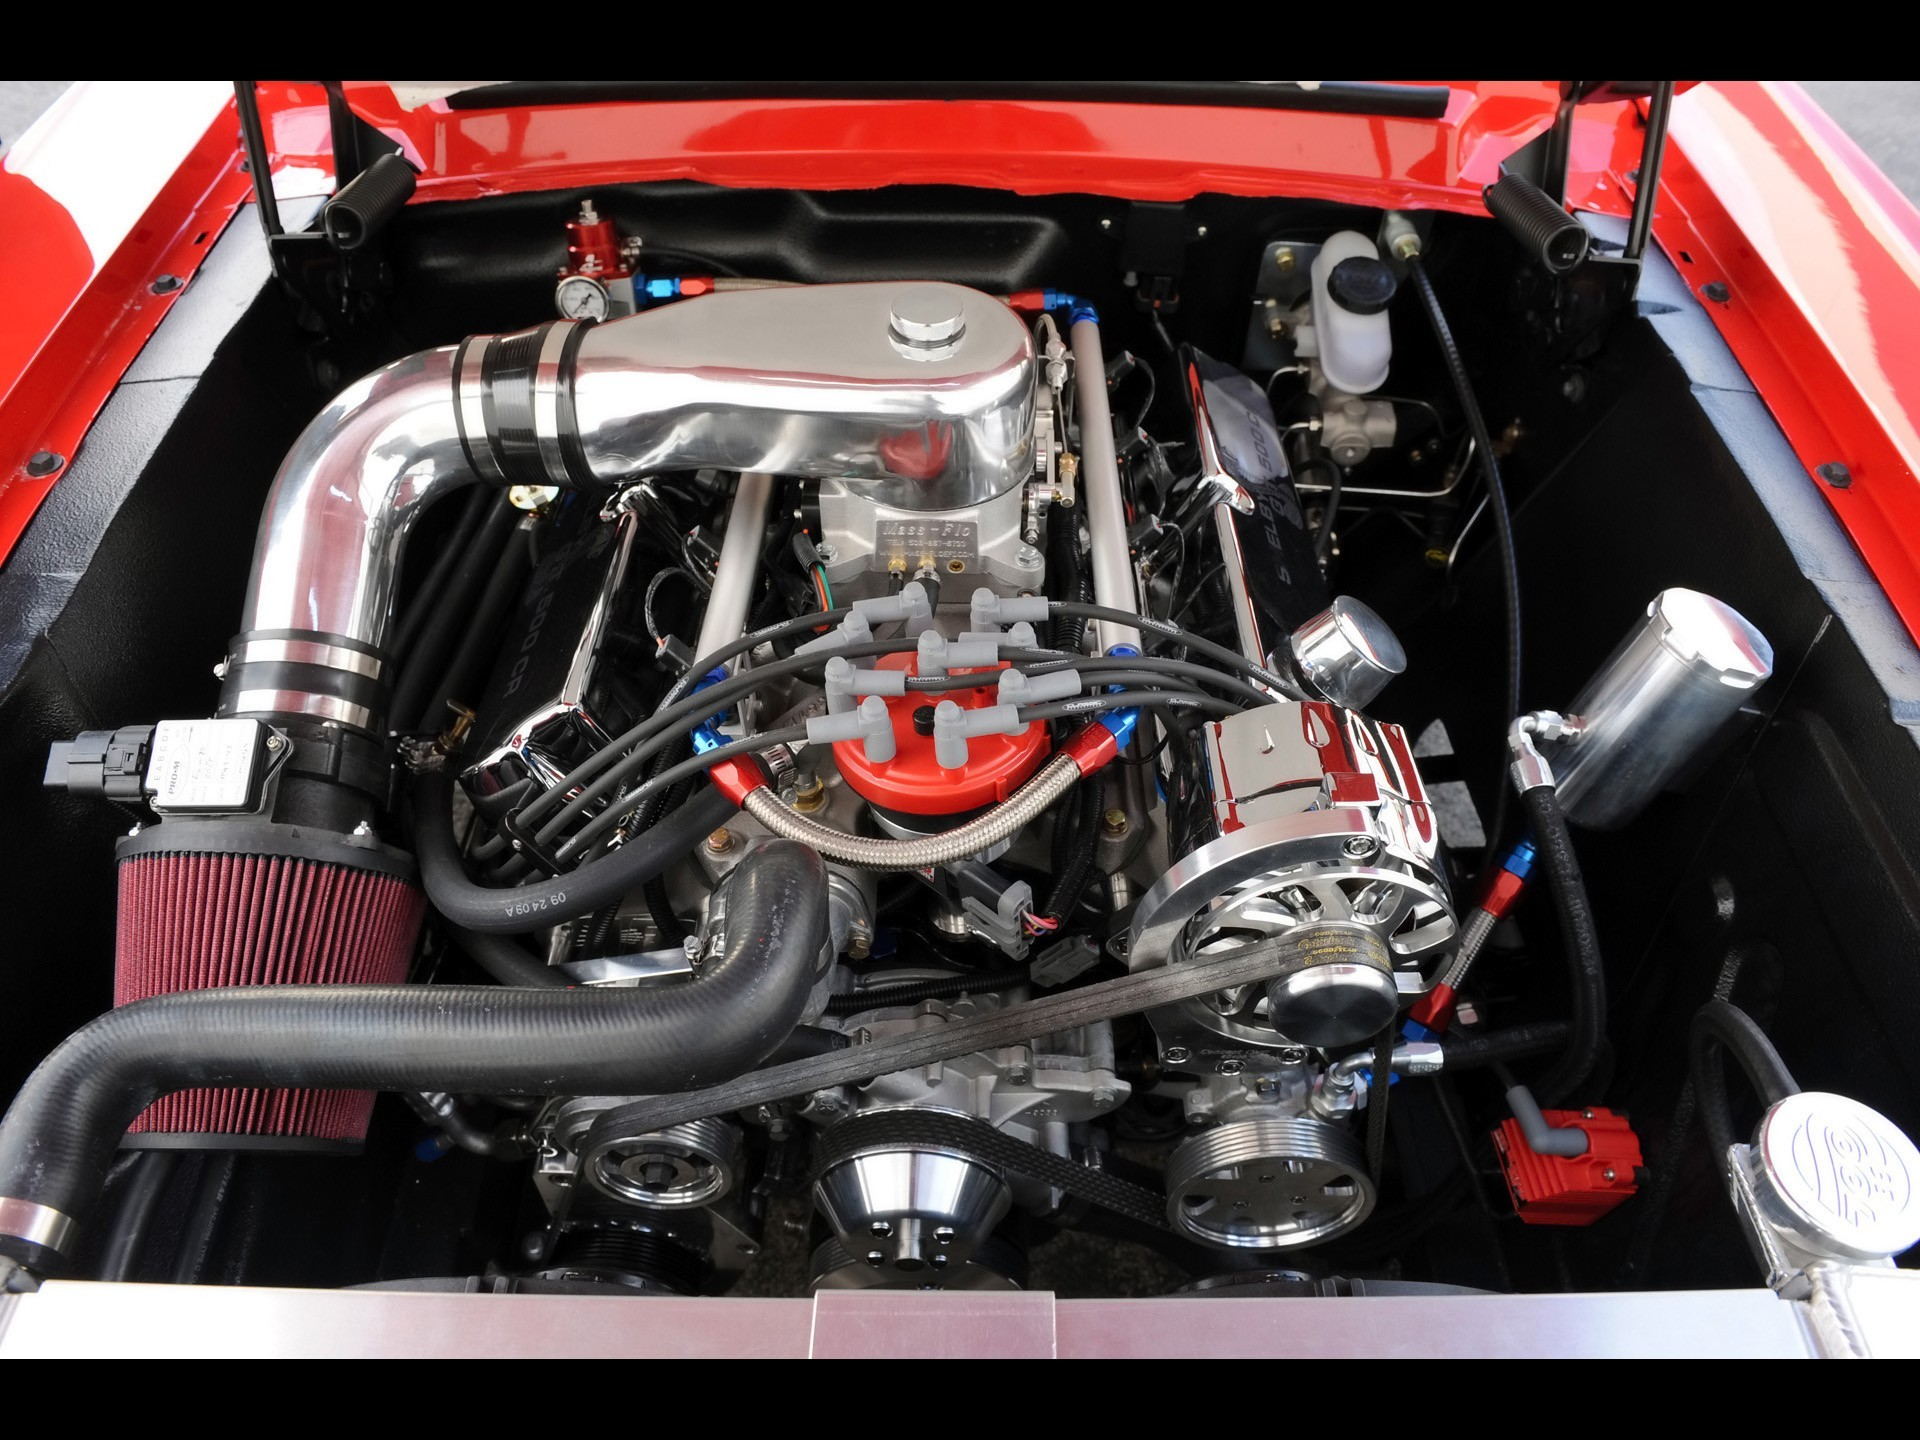 Classic ford shelby v8 engine engines muscle cars wallpaper ...